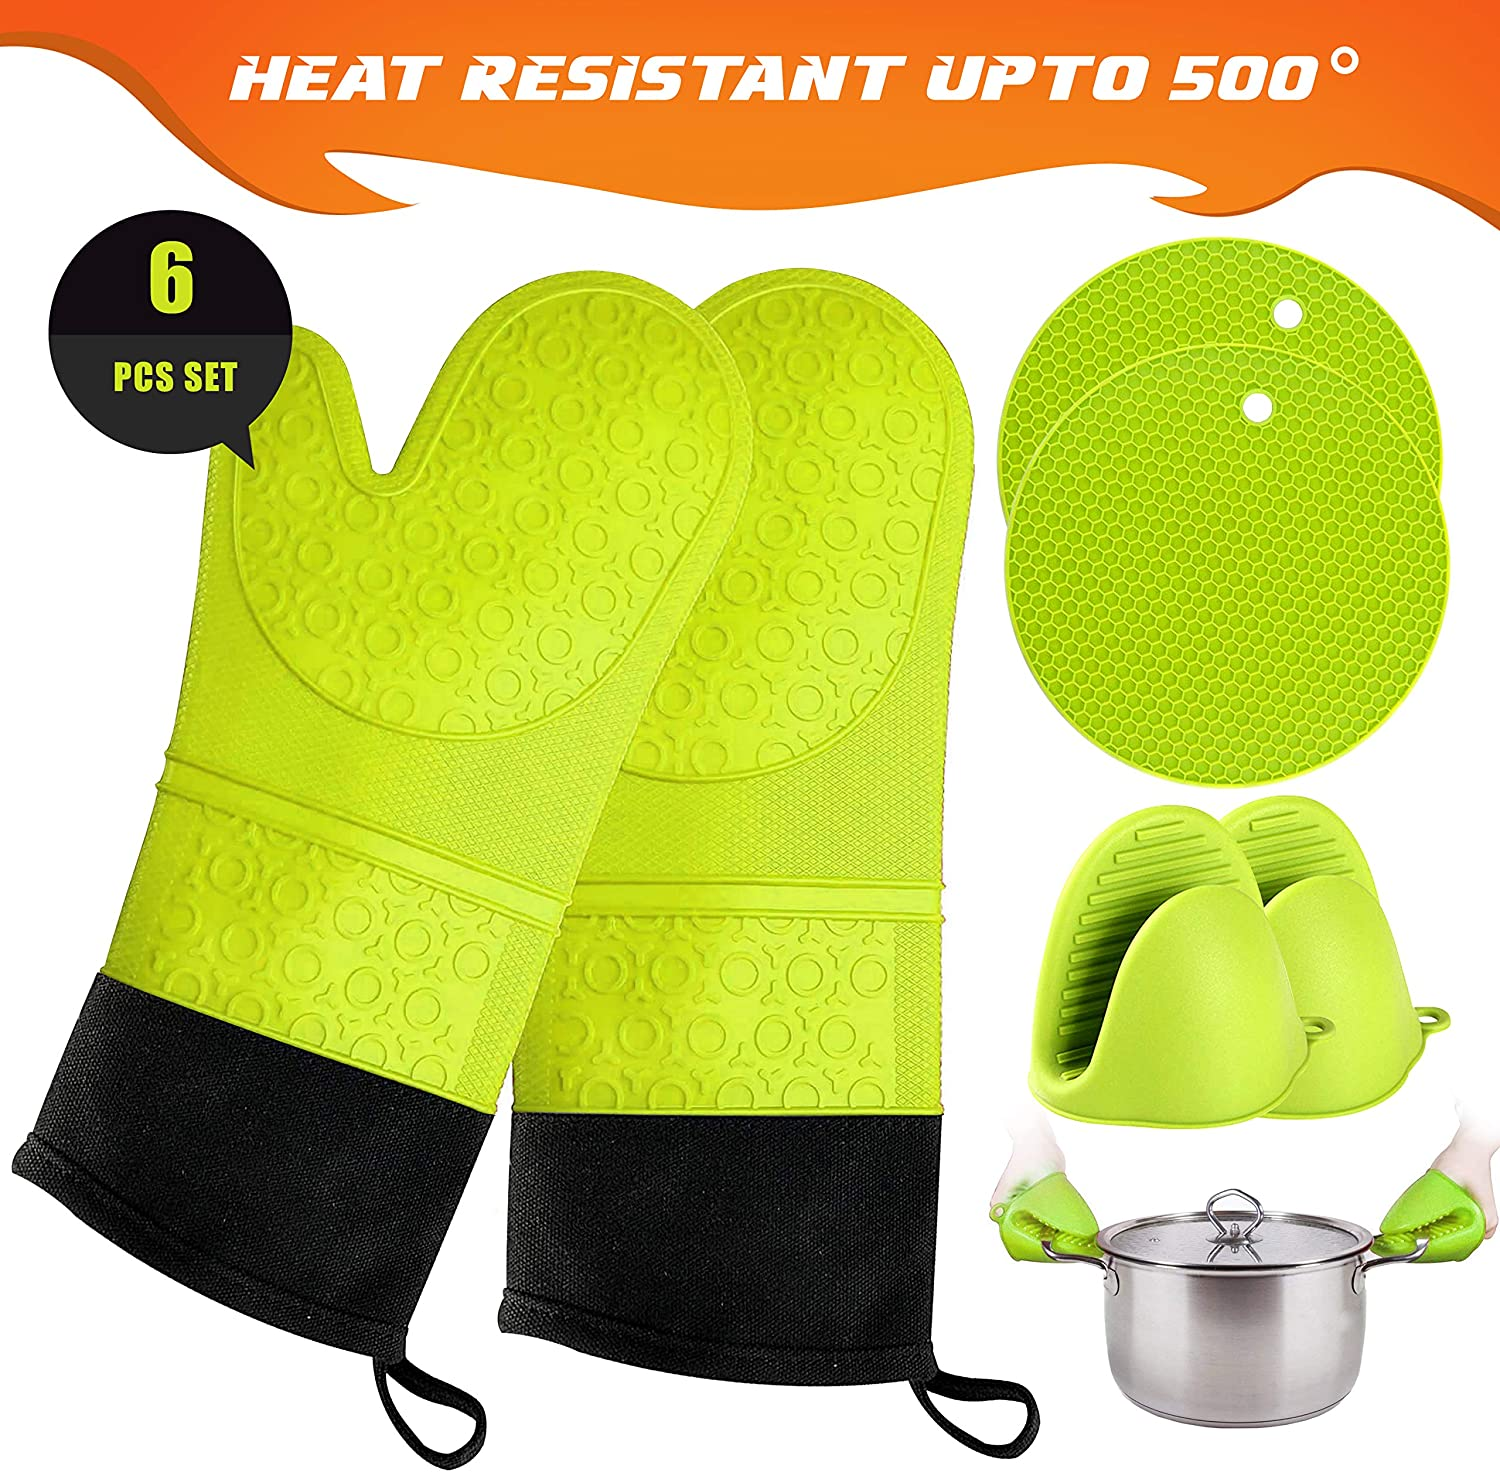 Extra Long Silicone Oven Mitt Heat Resistant 500 Degrees with bonus 2 trivets /& Mini Pinch Oven Mitts-Food Safe Baking Gloves for Cooking in Kitchen with Soft Inner Lining Oven Mitts and Pot Holder